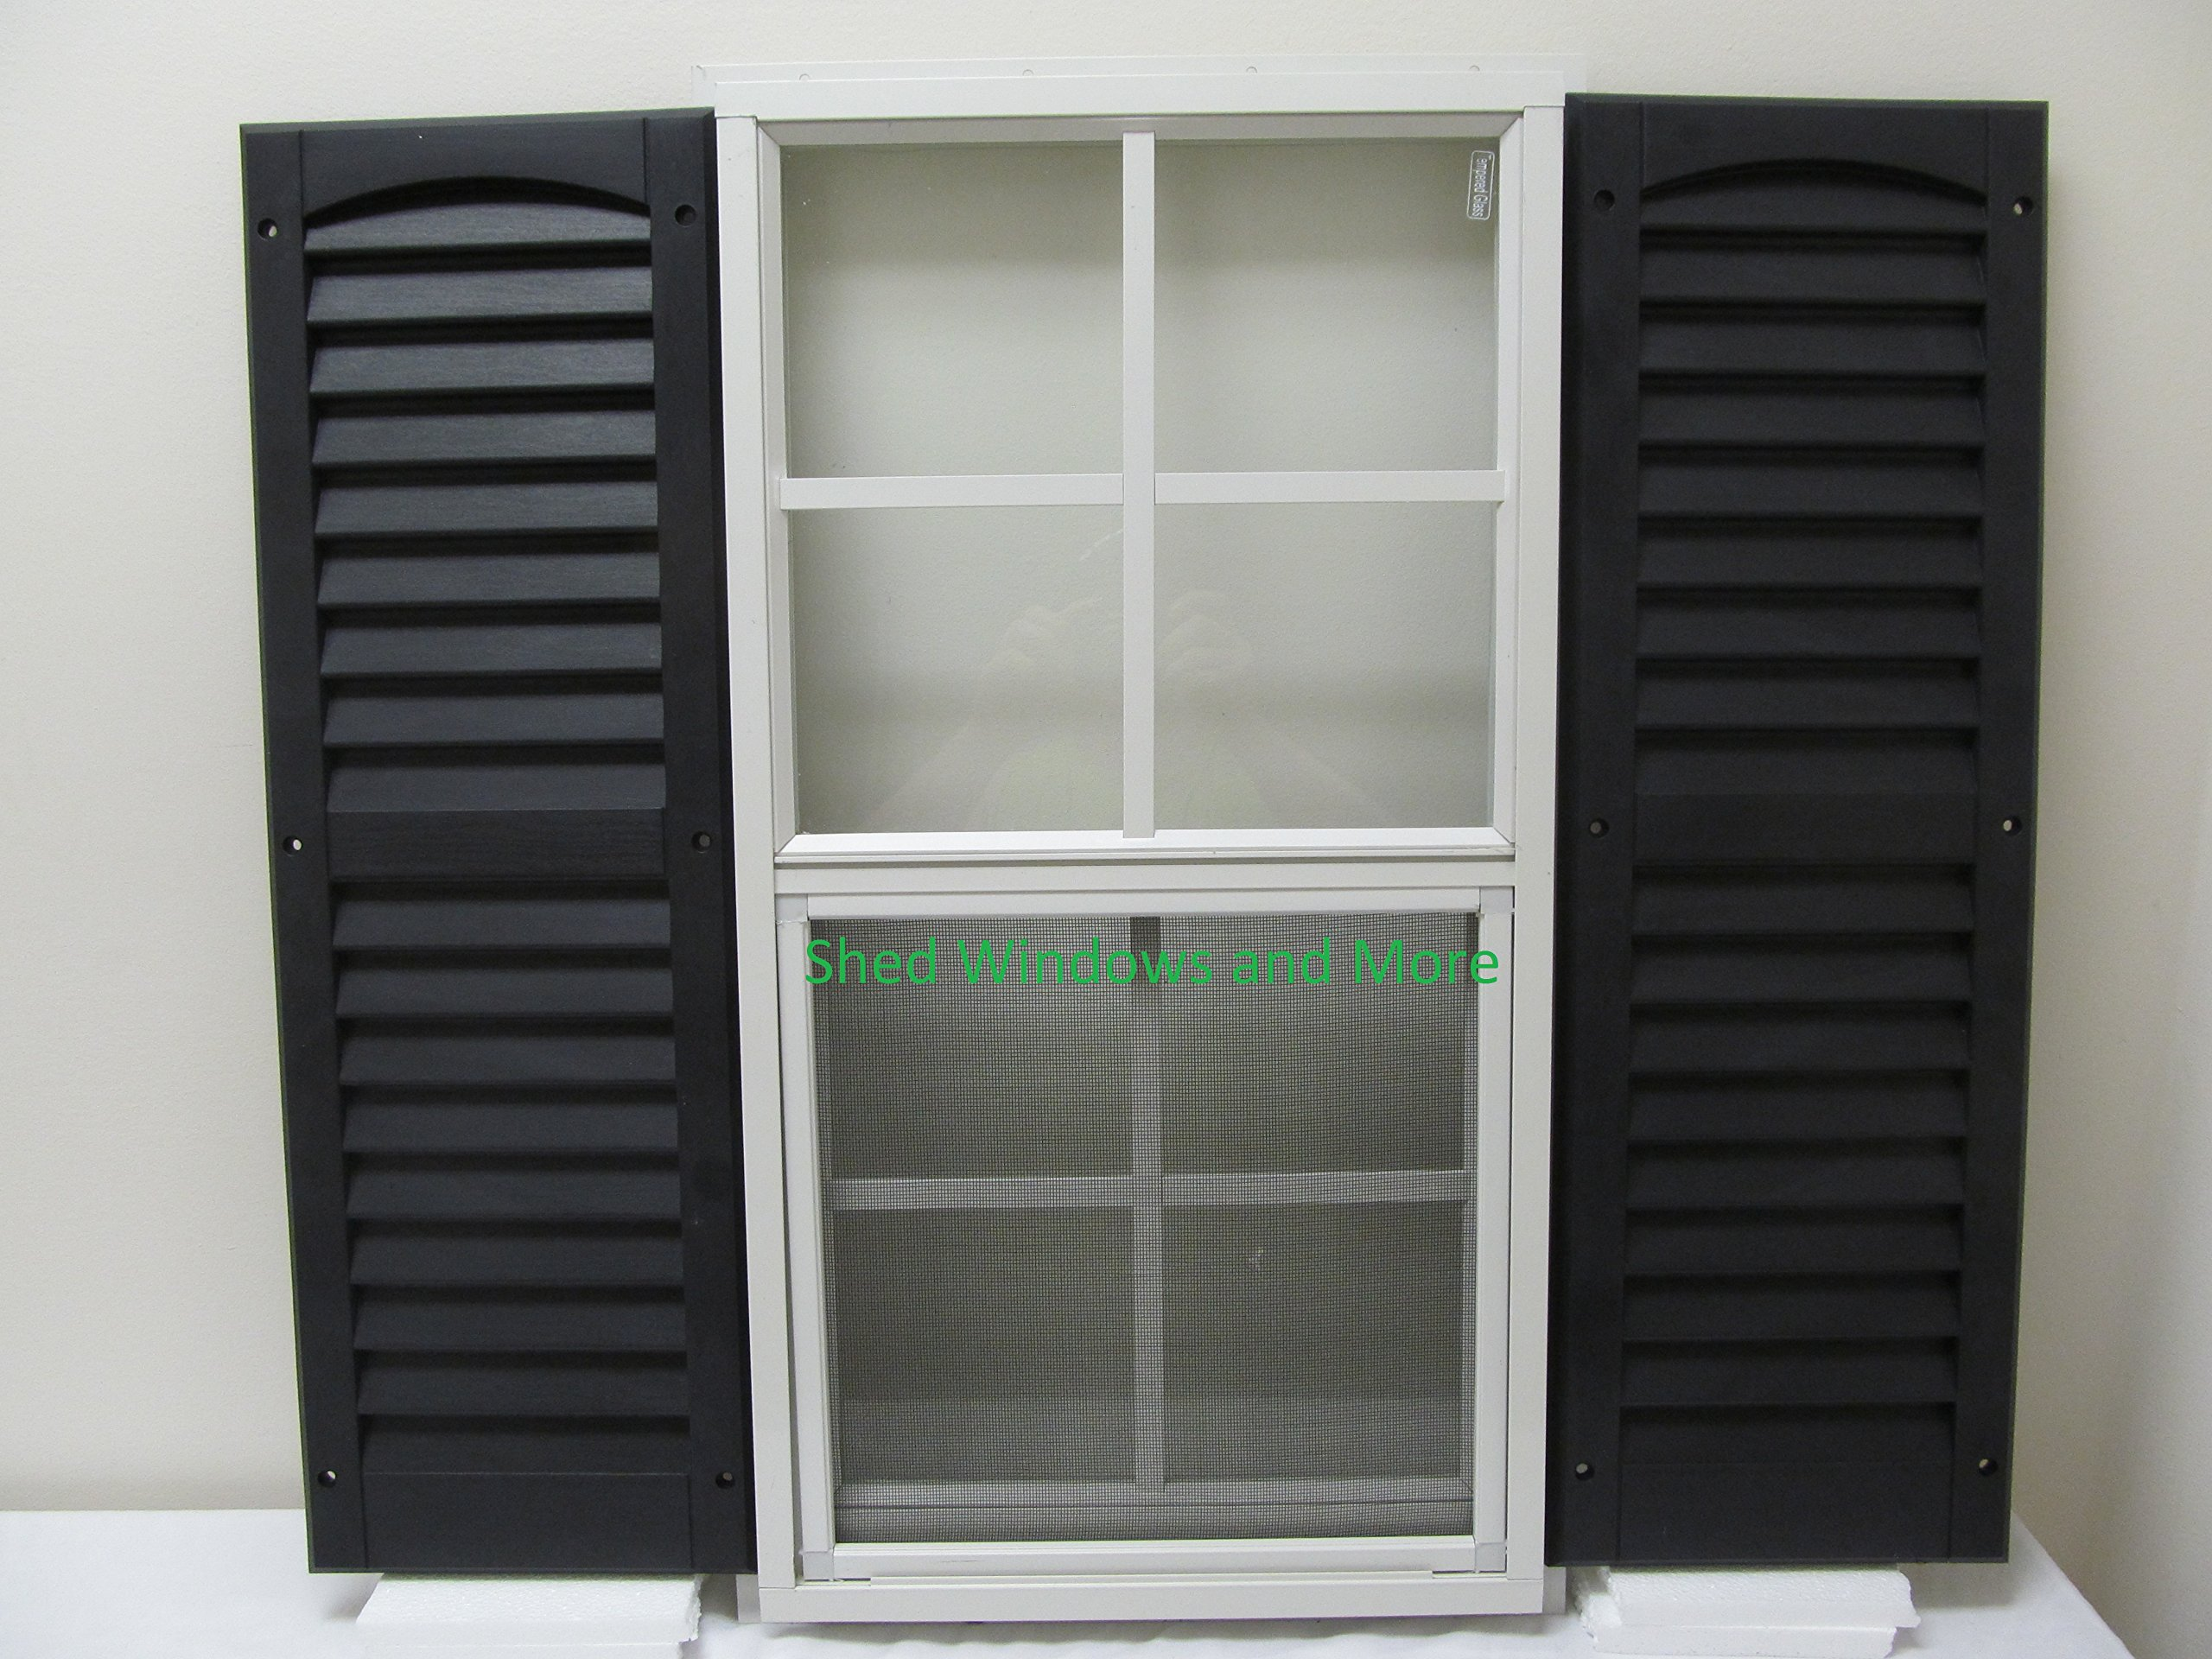 Shed Window with Blue Shutters 14 X 27 White J-Channel Safety Glass Playhouse Window